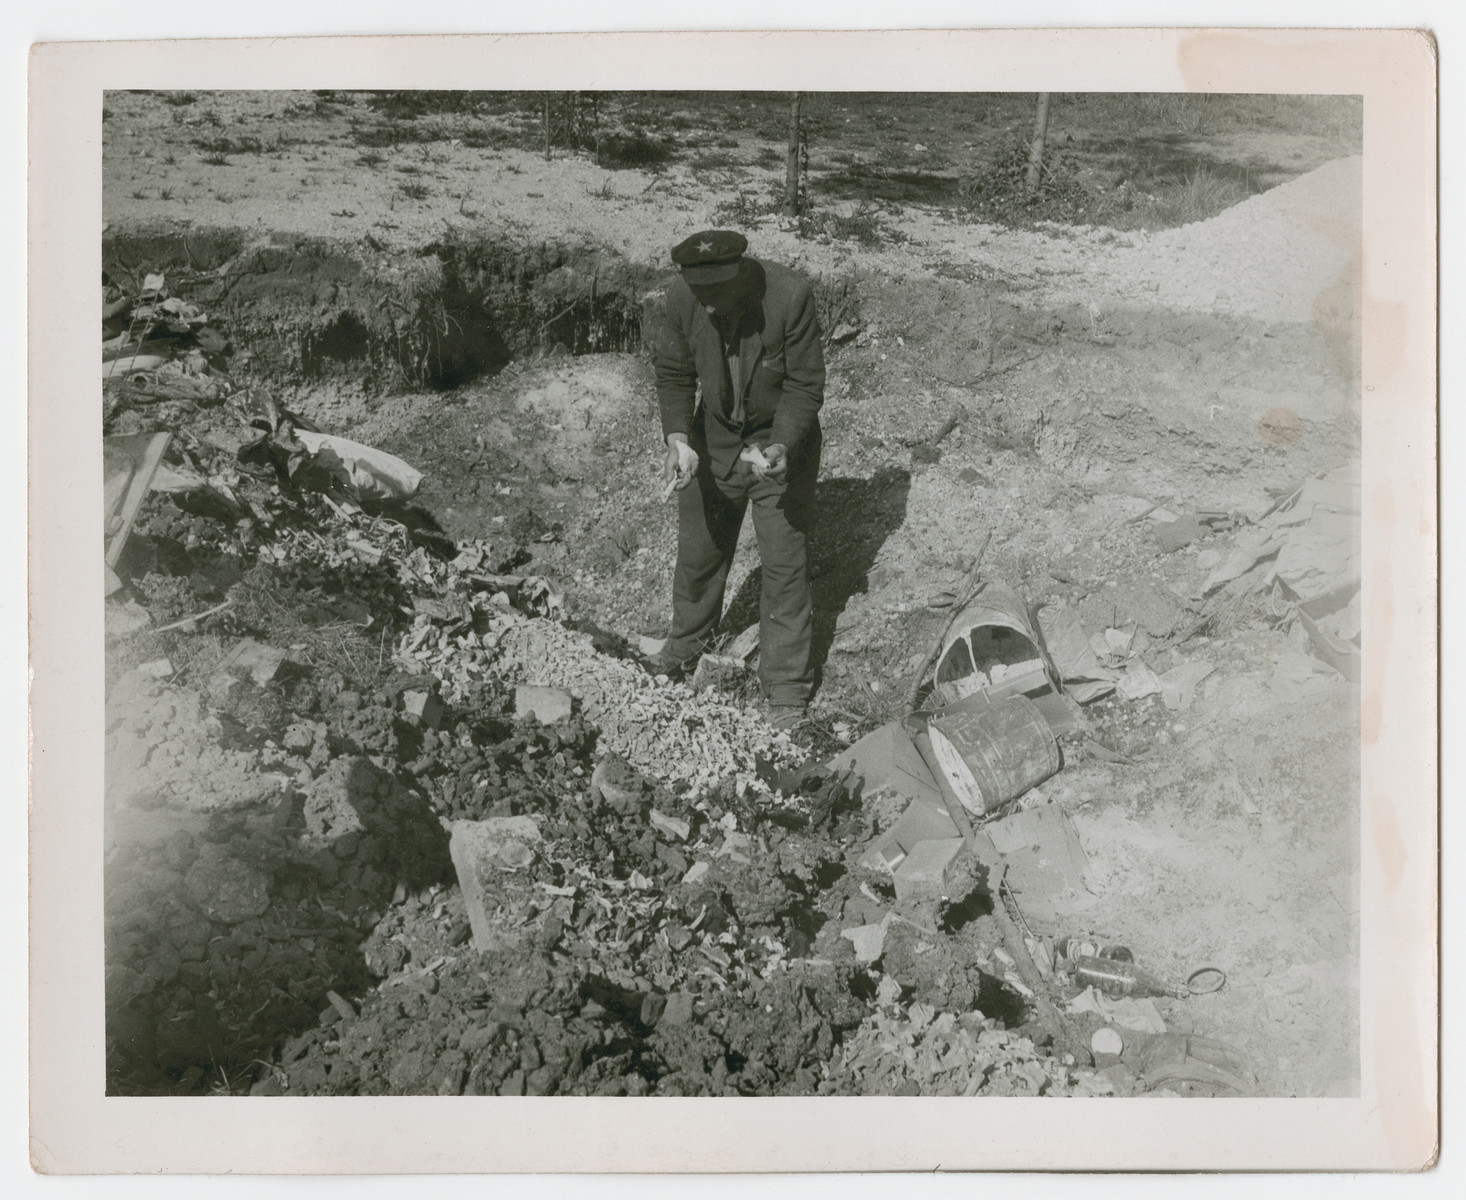 A Yugoslav survivors examines what is possibly a mass grave in the Dachau concentration camp.